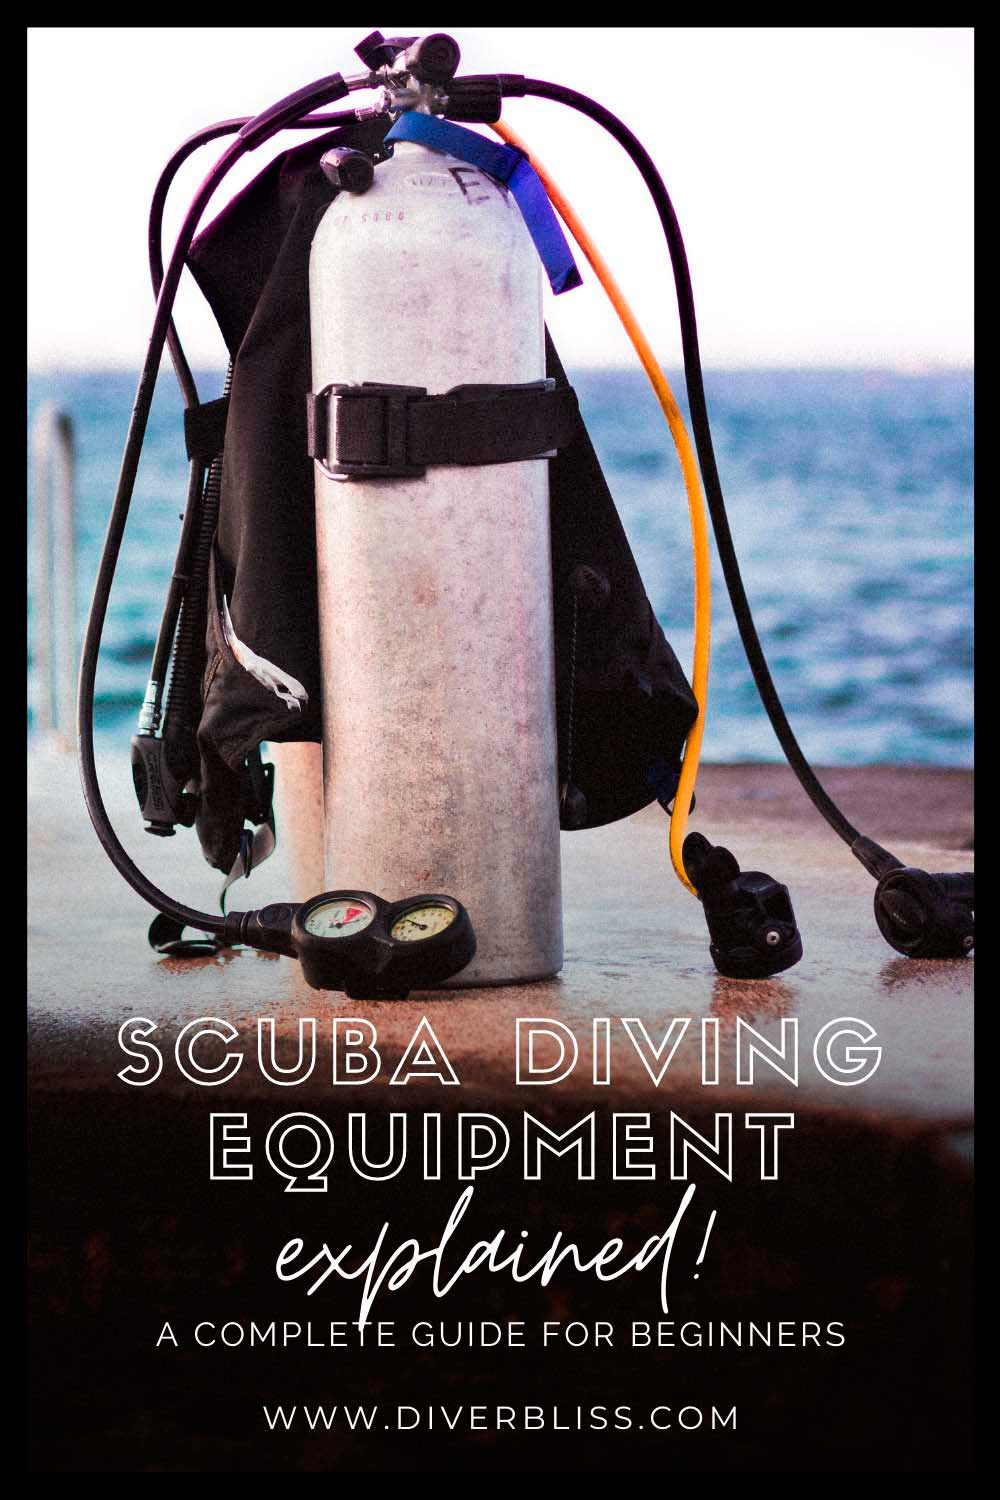 Equipment for scuba diving explained! A complete guide for beginners